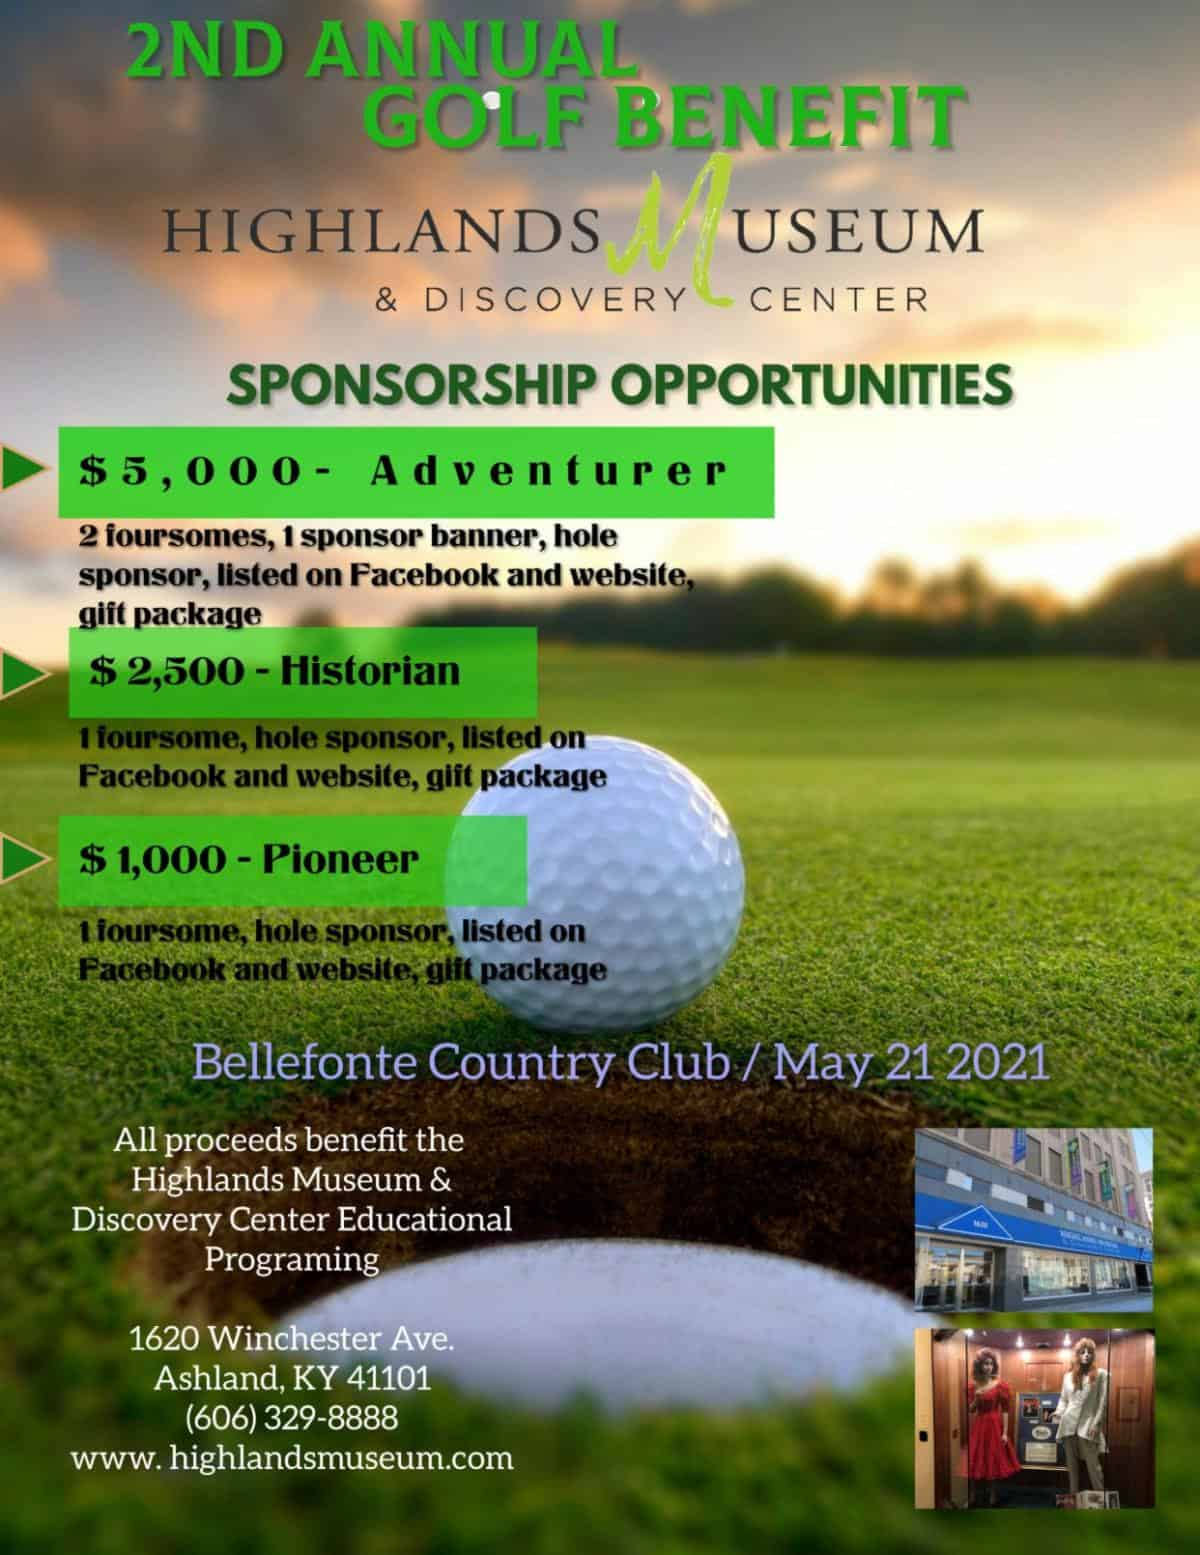 2nd Annual Golf Benefit